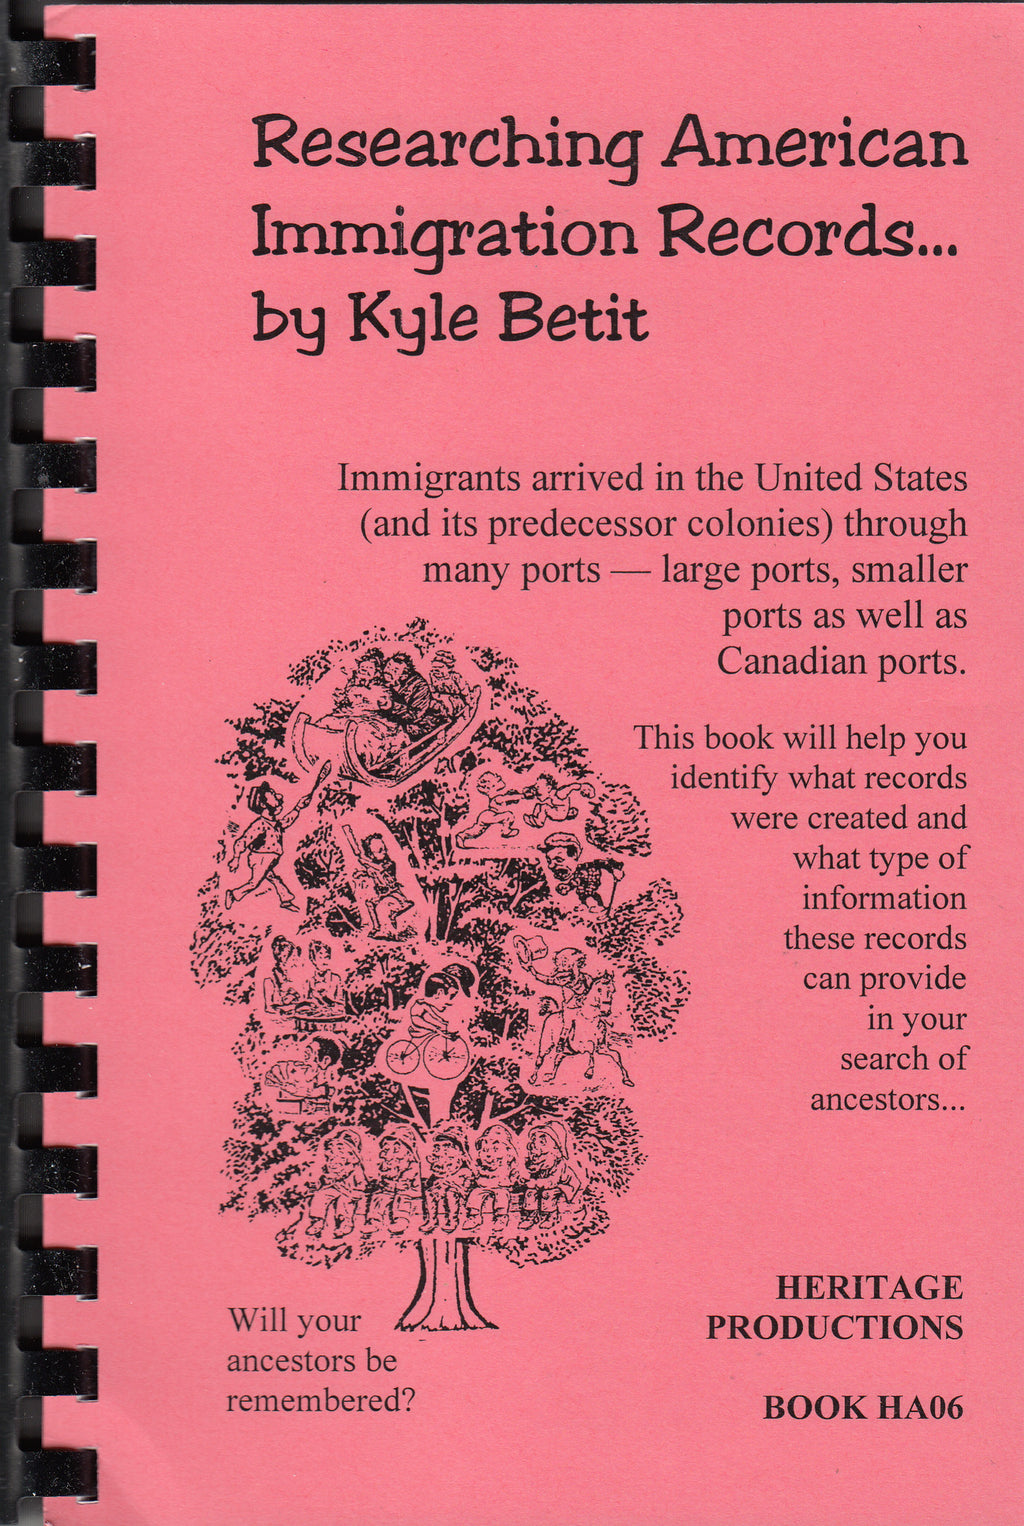 Researching American Immigration Records